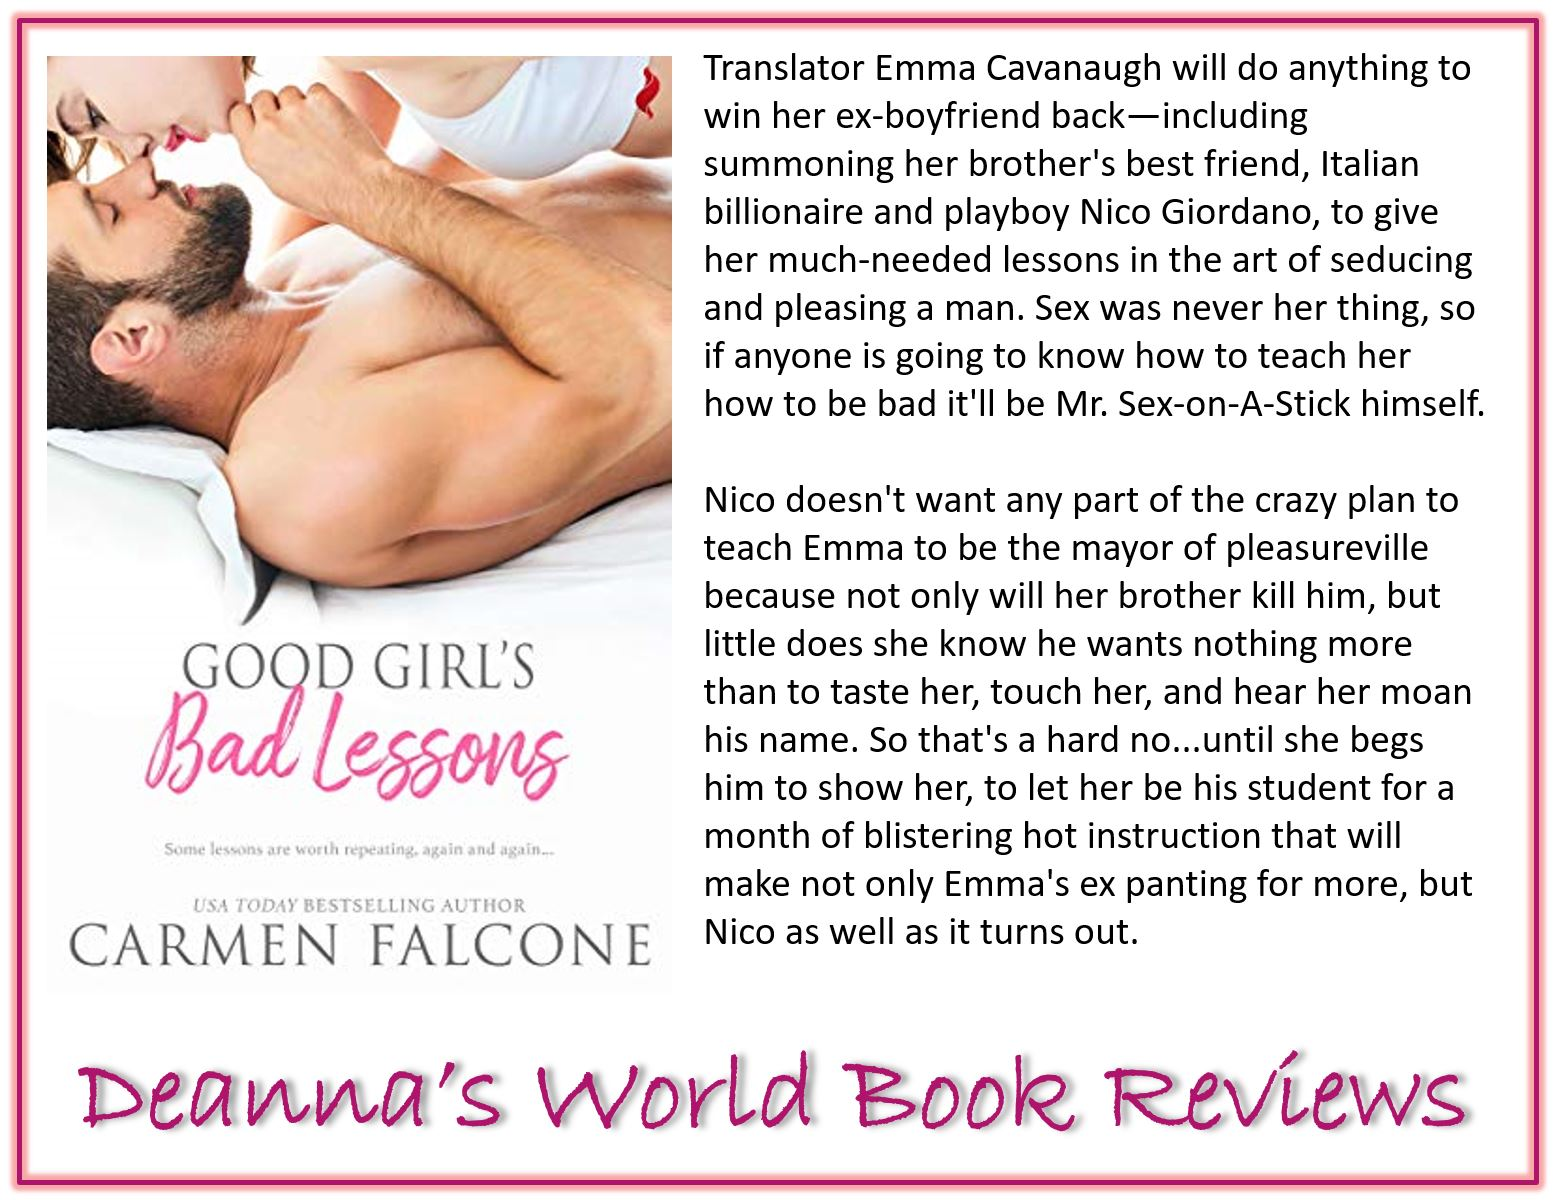 Good Girl's Bad Lessons by Carmen Falcone blurb